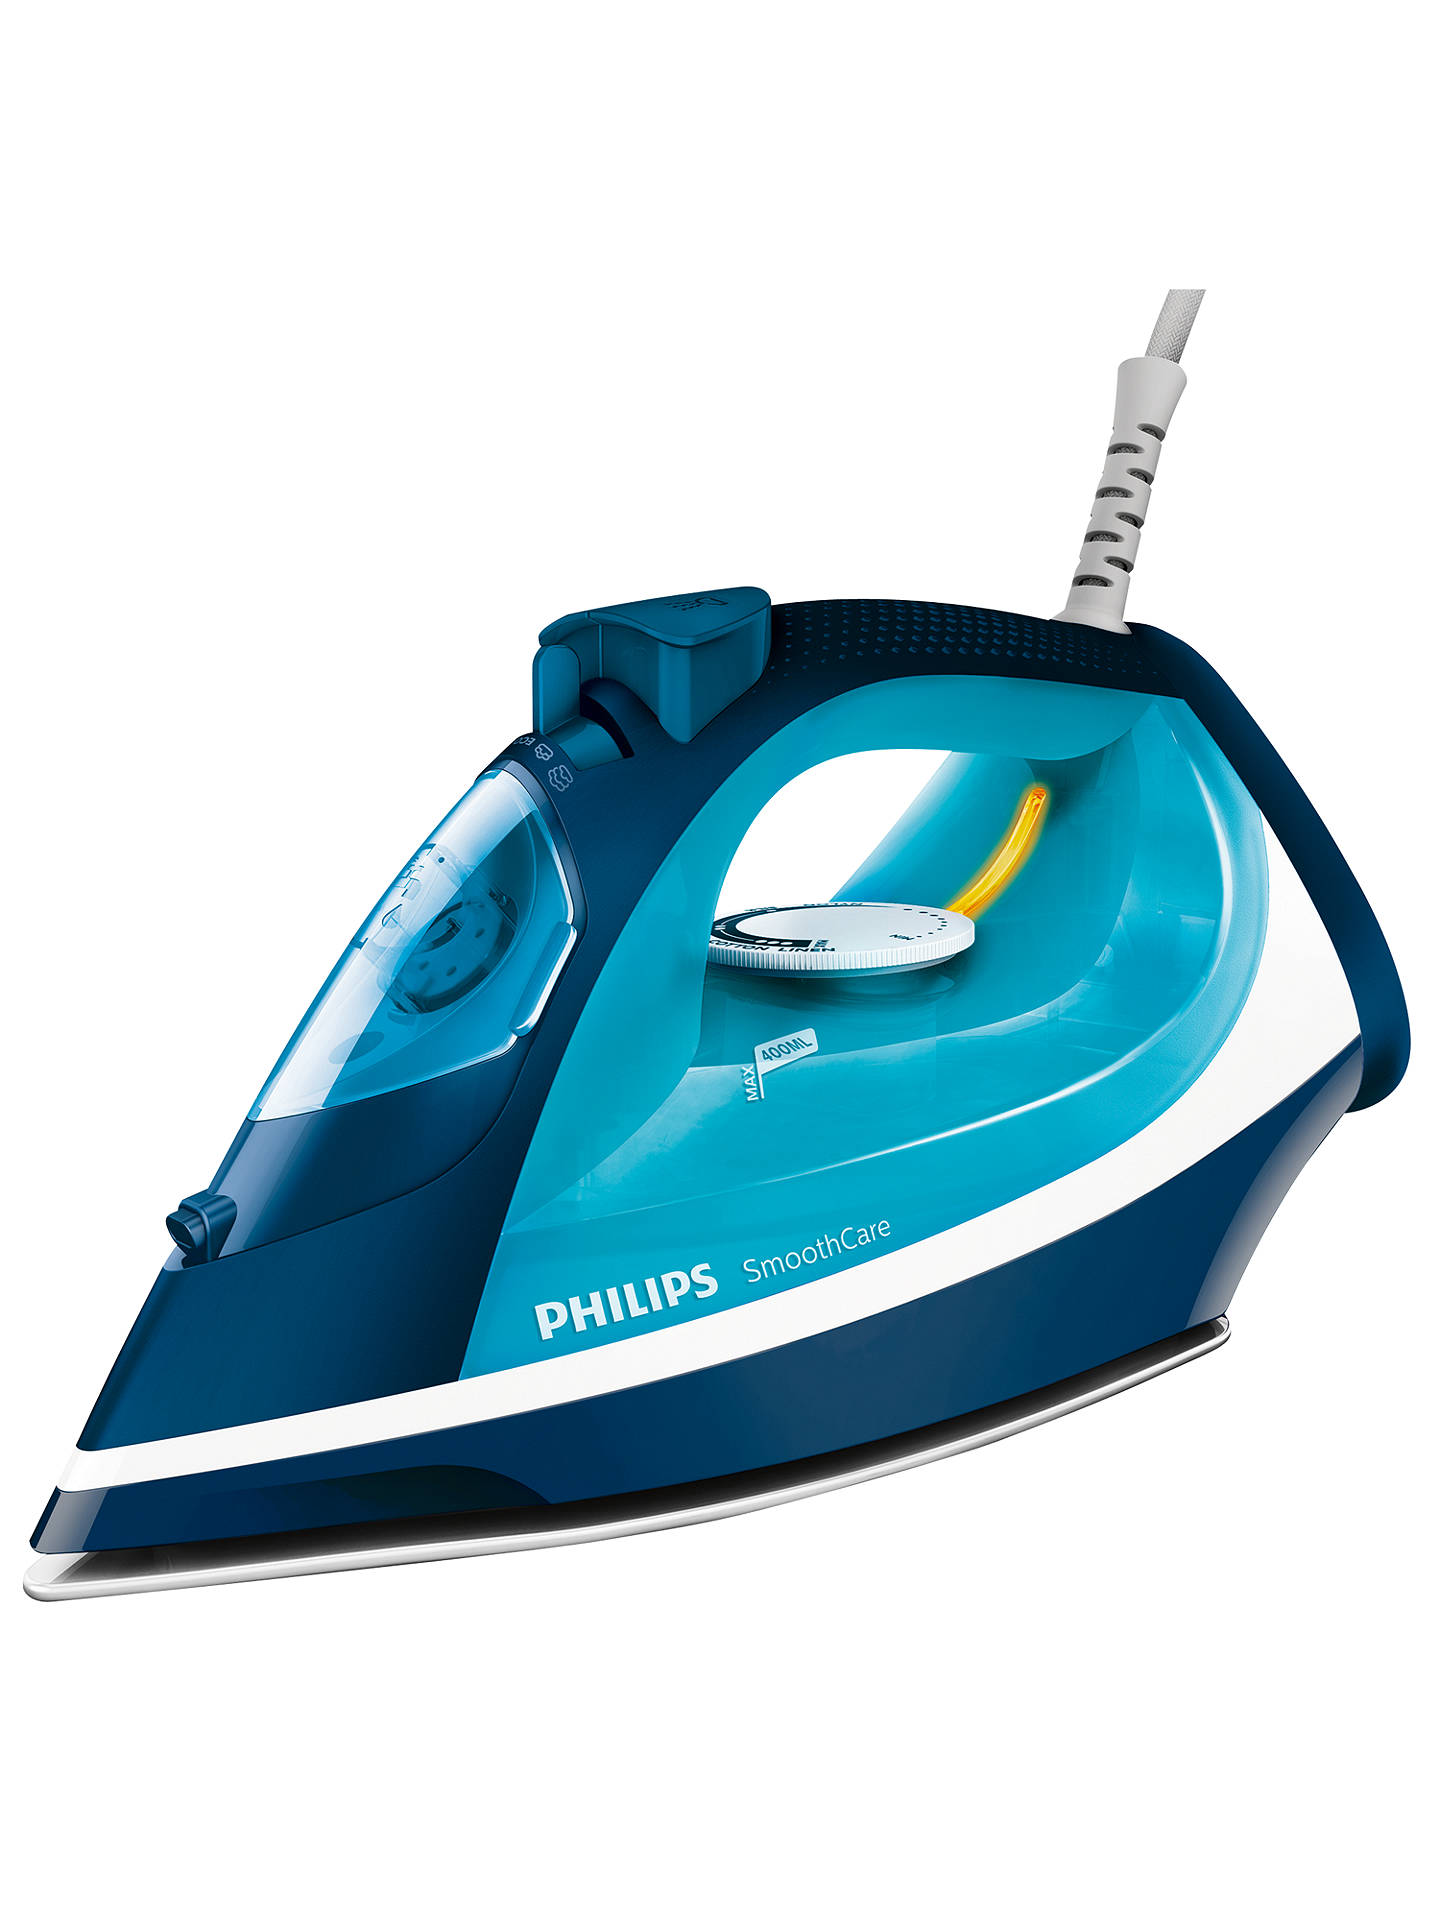 philips gc3583 20 steam iron blue at john lewis partners. Black Bedroom Furniture Sets. Home Design Ideas